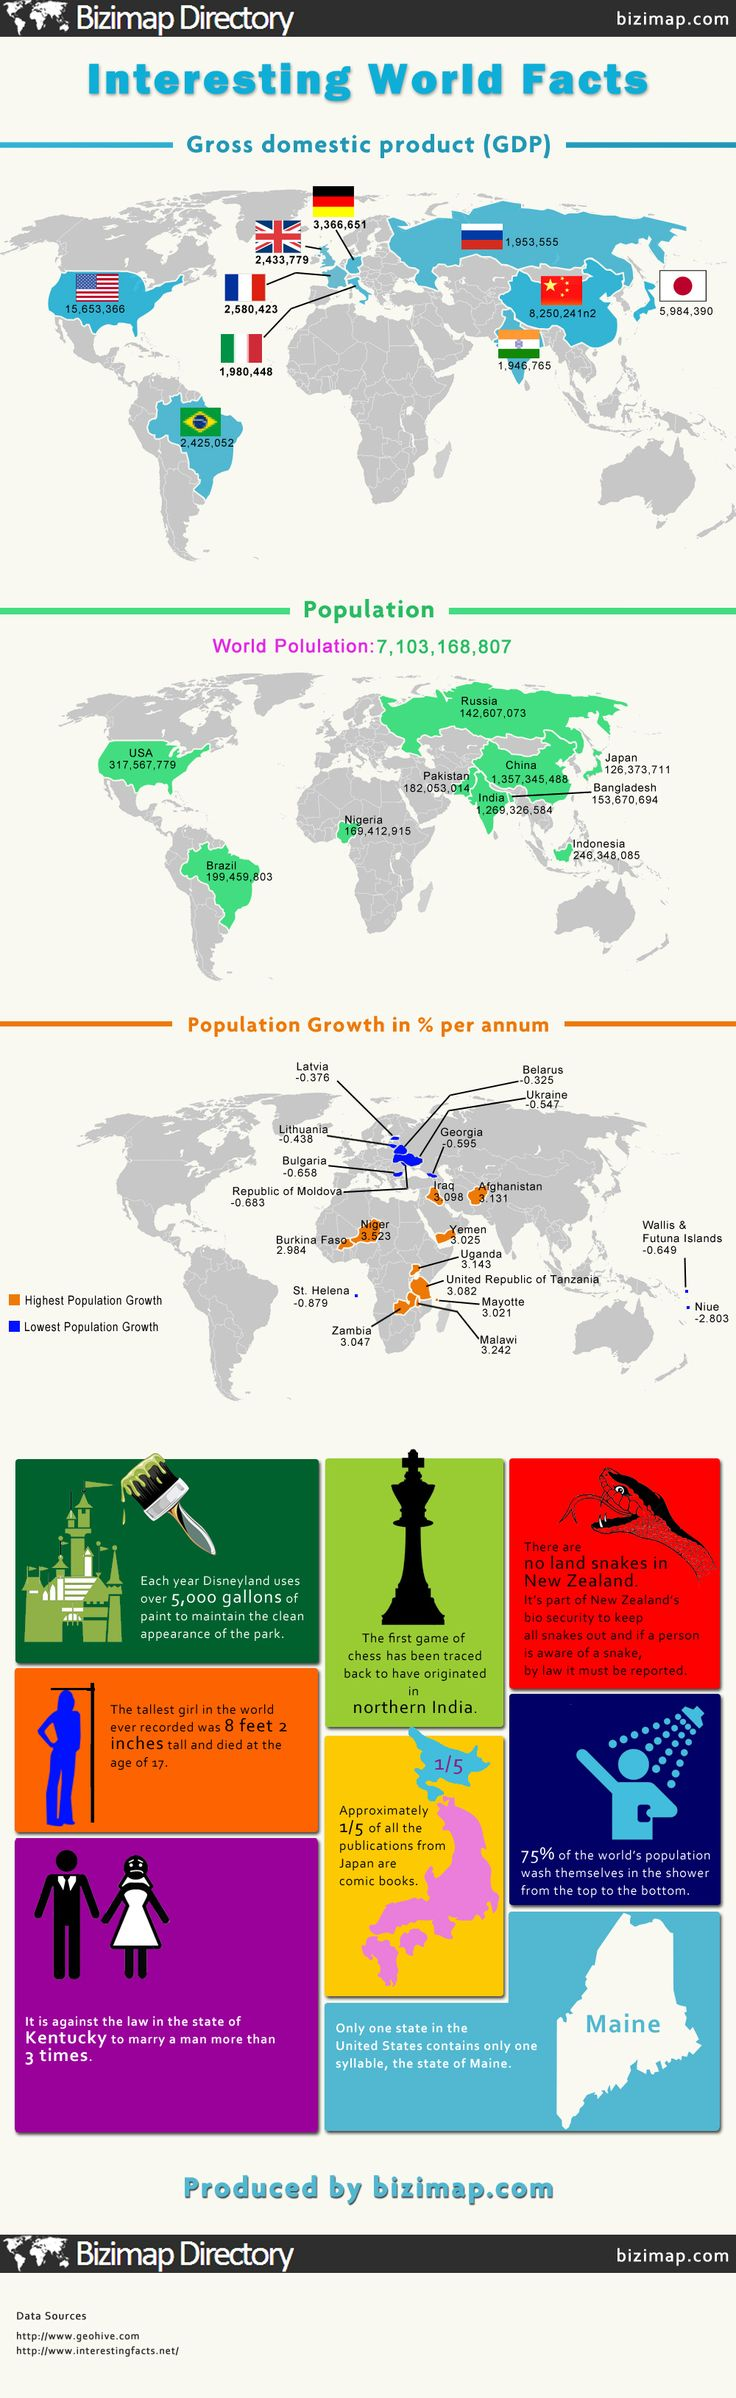 An infographic that goes through some interesting facts about the world including GDP and Population.